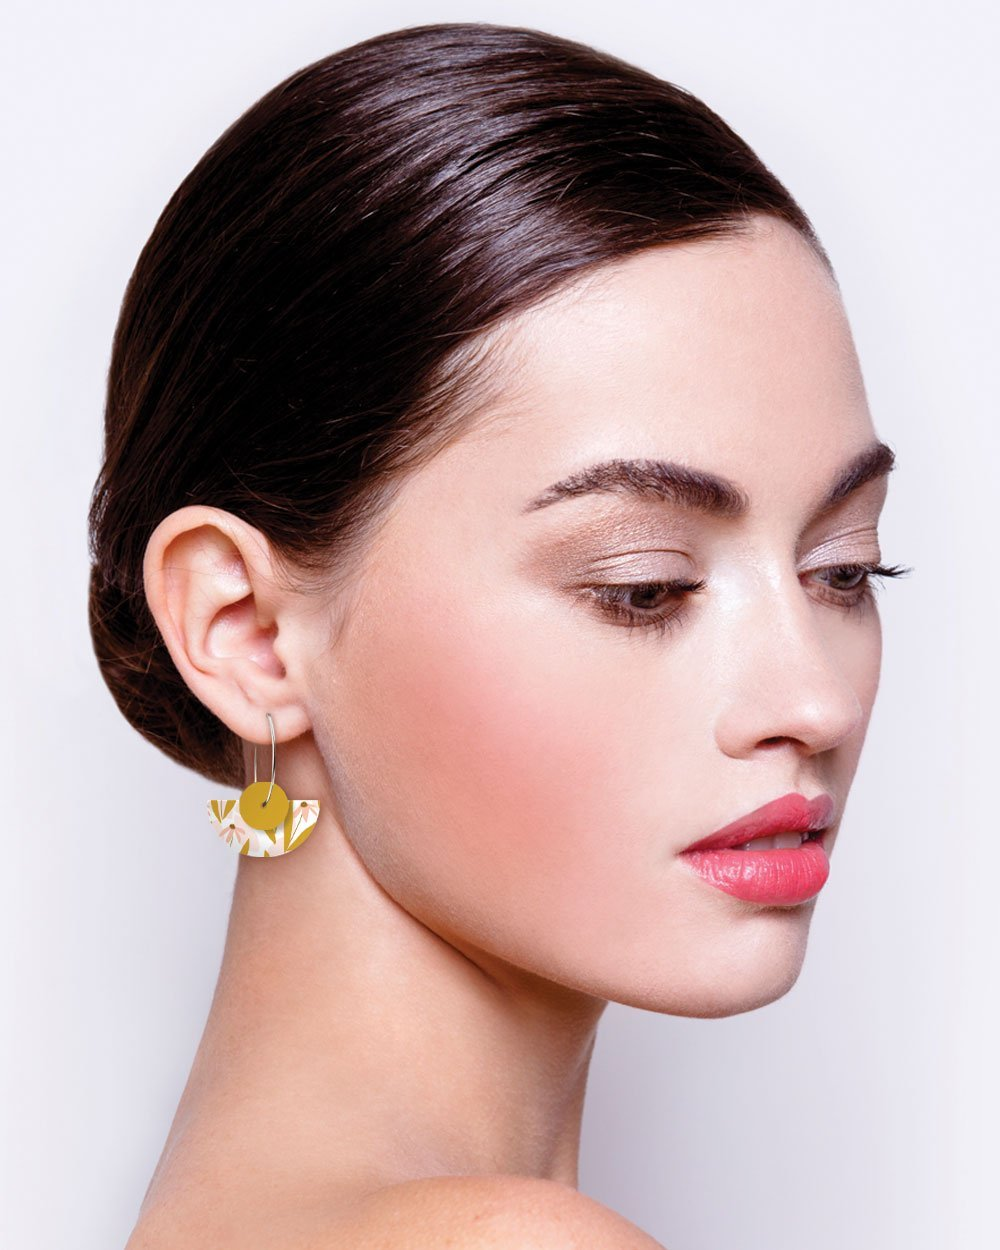 Marguerite Bloom Myriam Van Neste Layered Medium Moon Hoop Earrings